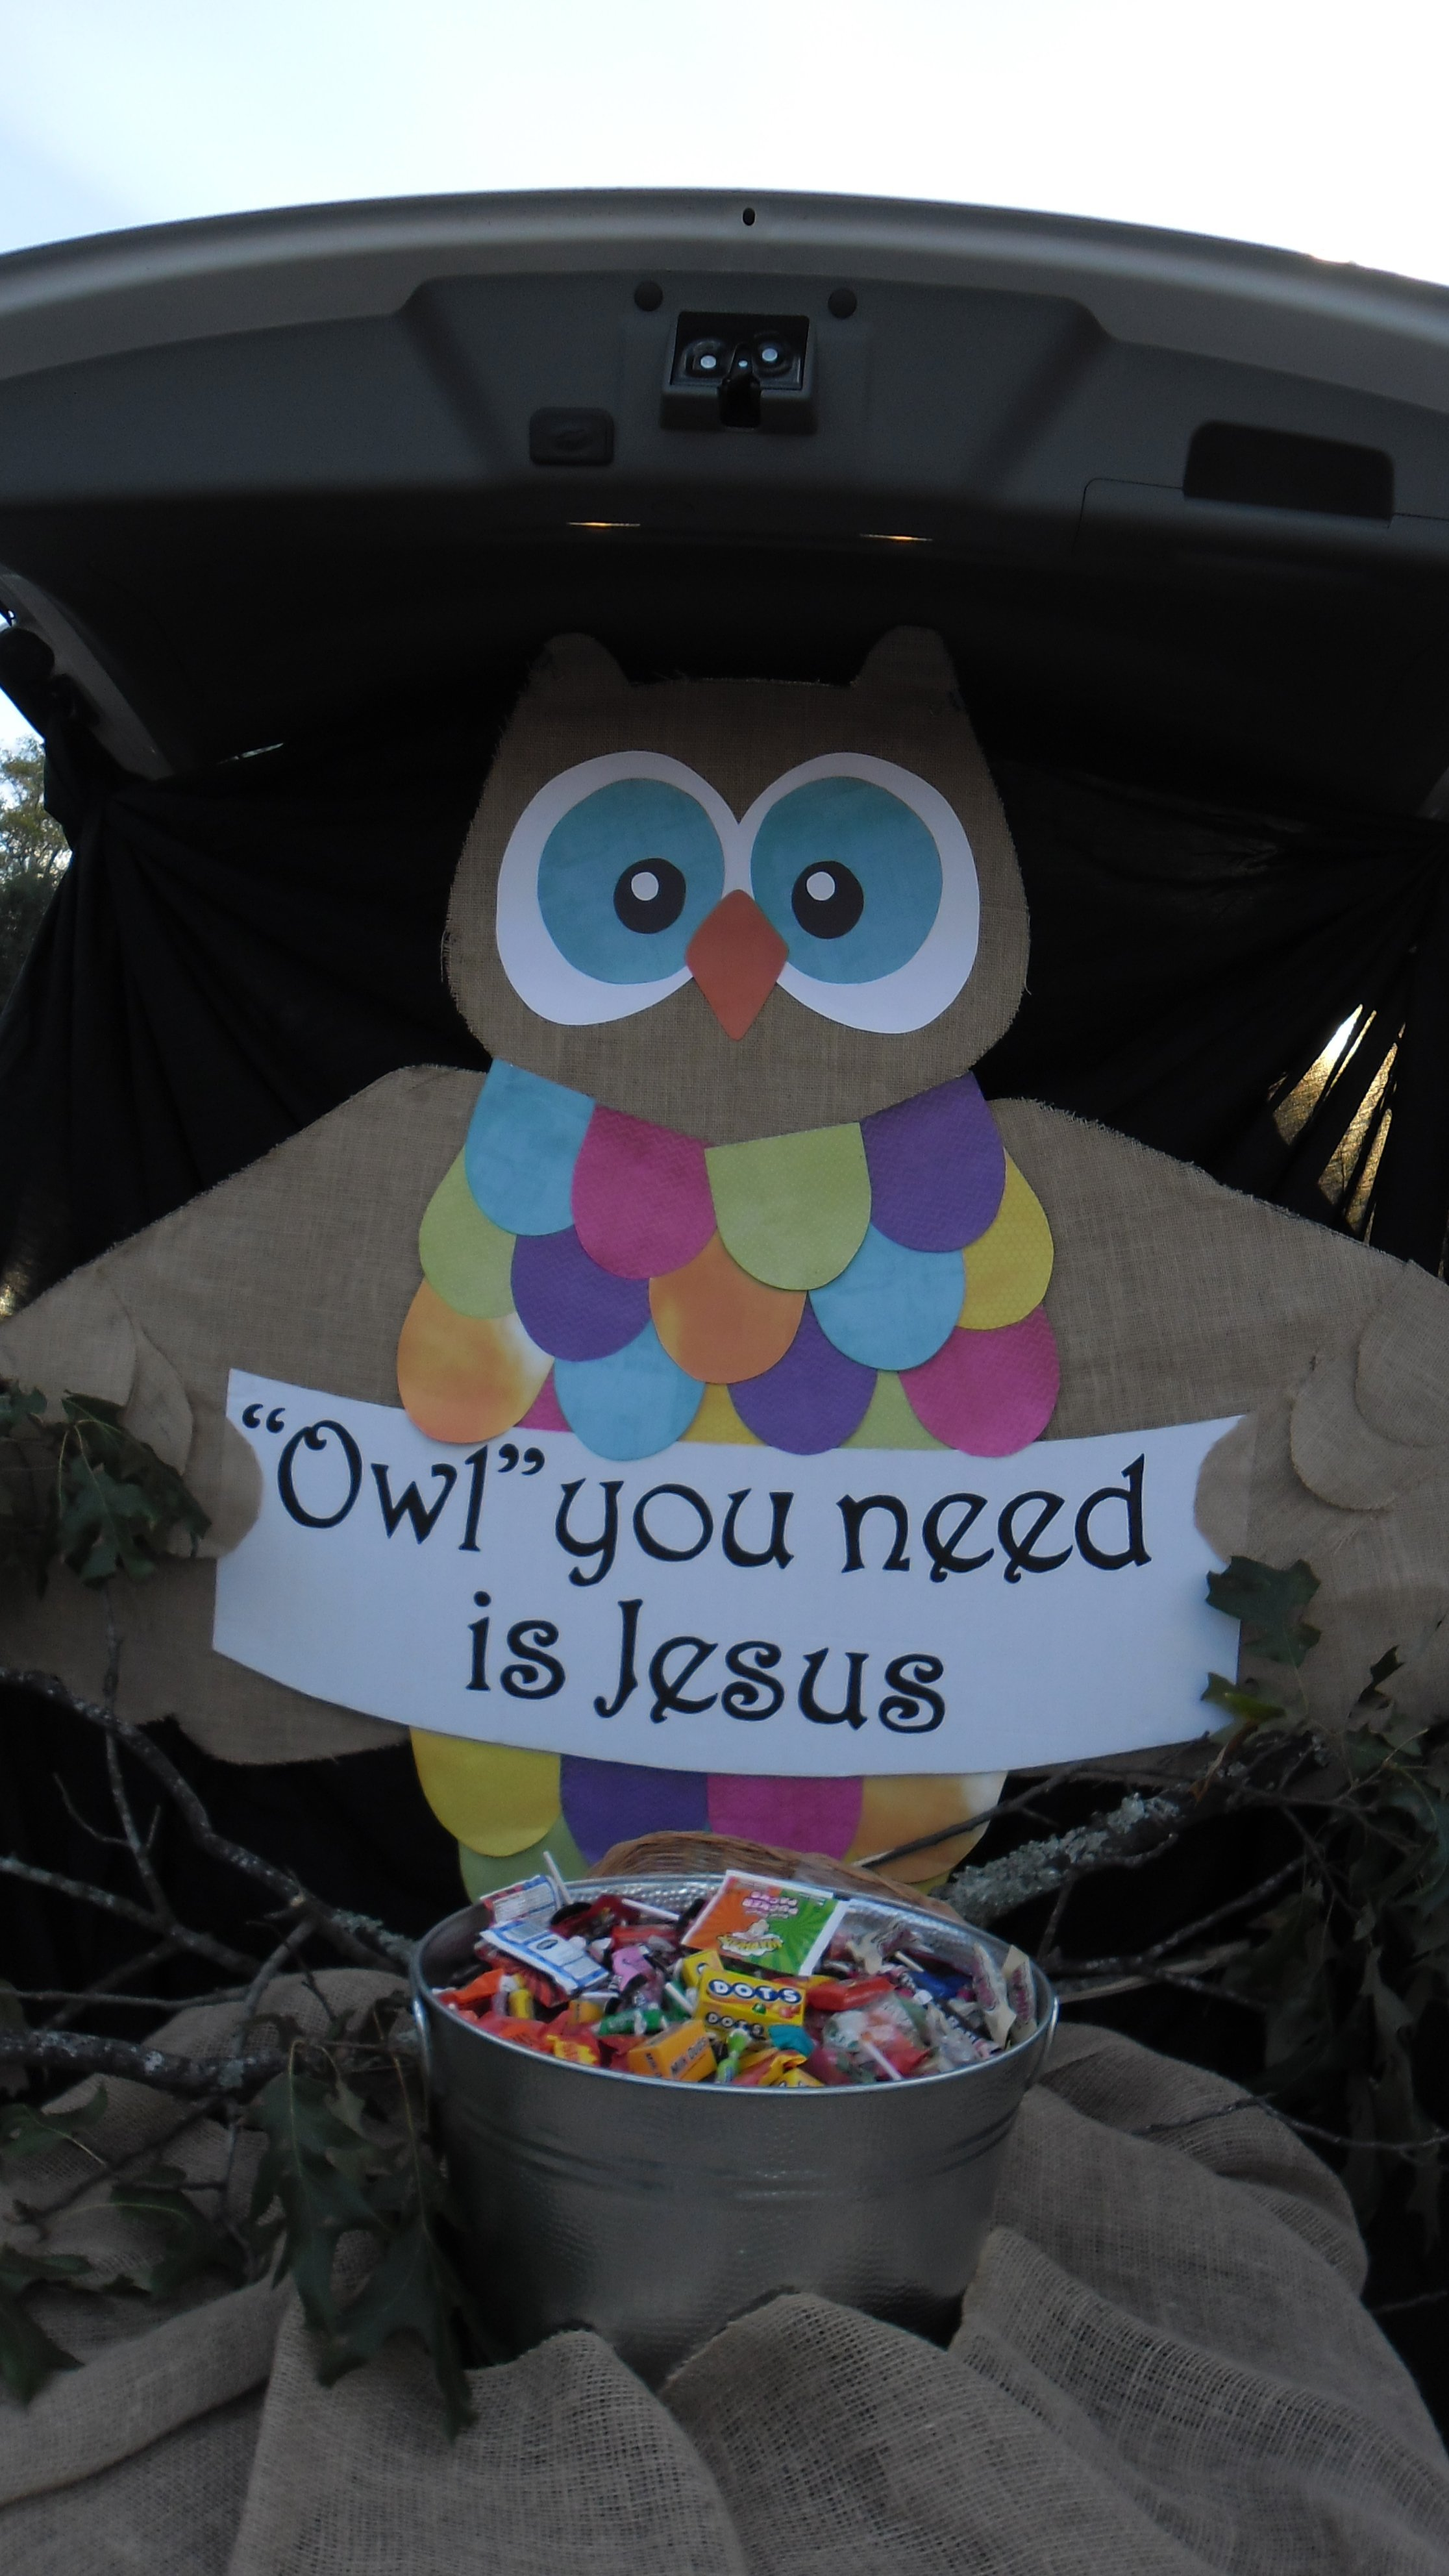 10 Perfect Easy Trunk Or Treat Decorating Ideas fbc tallulah la fall carnival trunk or treat owl you need is 5 2020